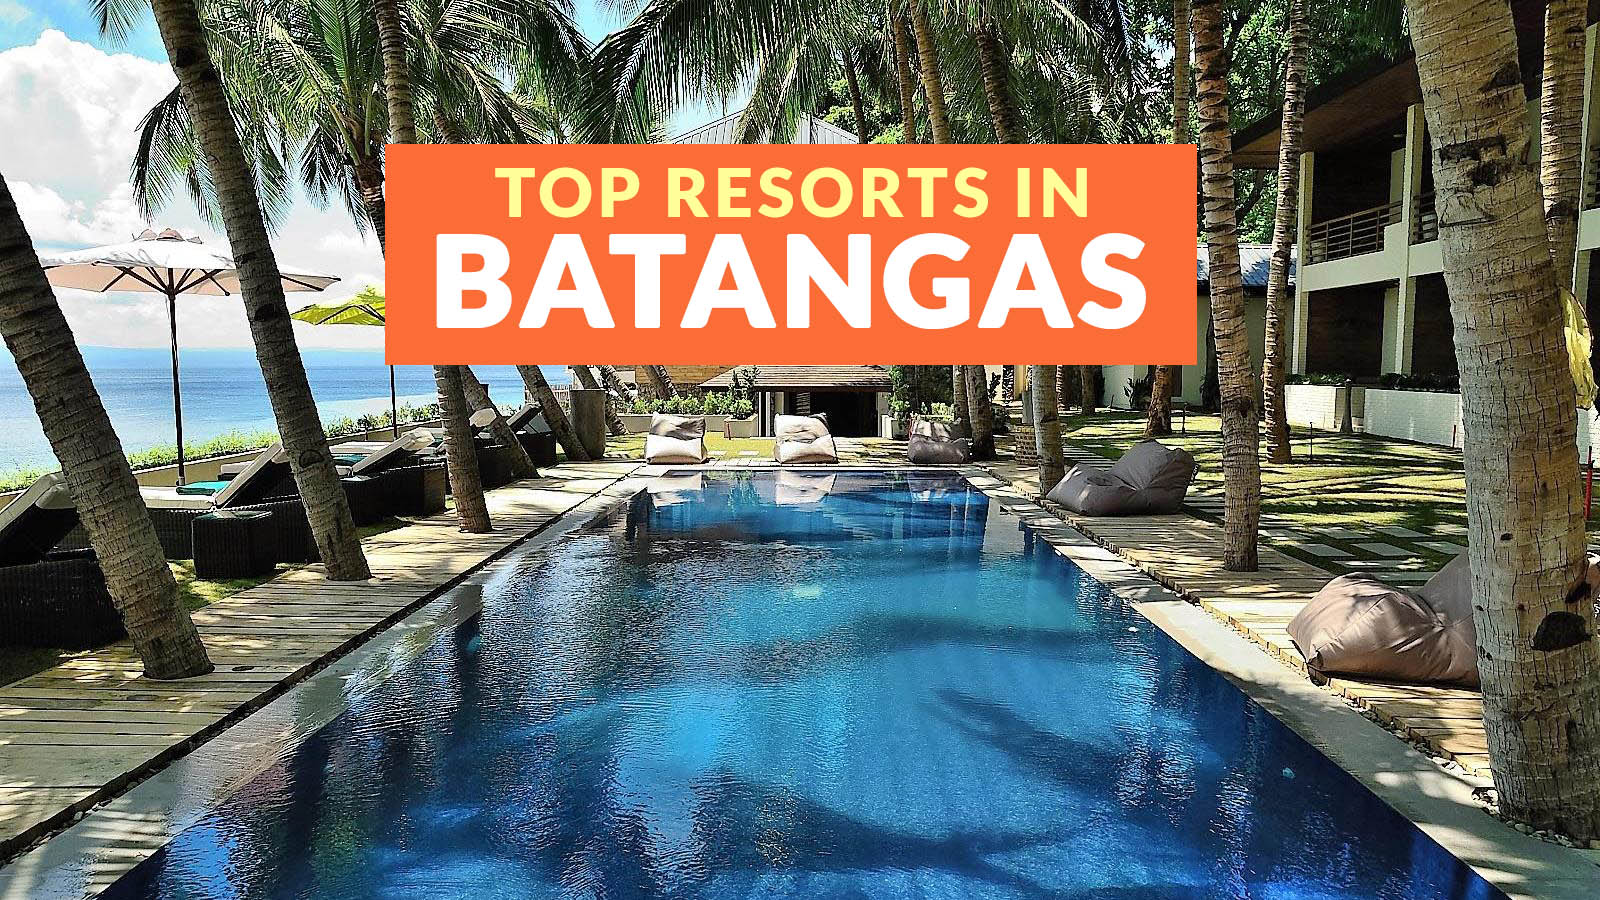 7 Top Rated Resorts In Batangas Philippine Beach Guide